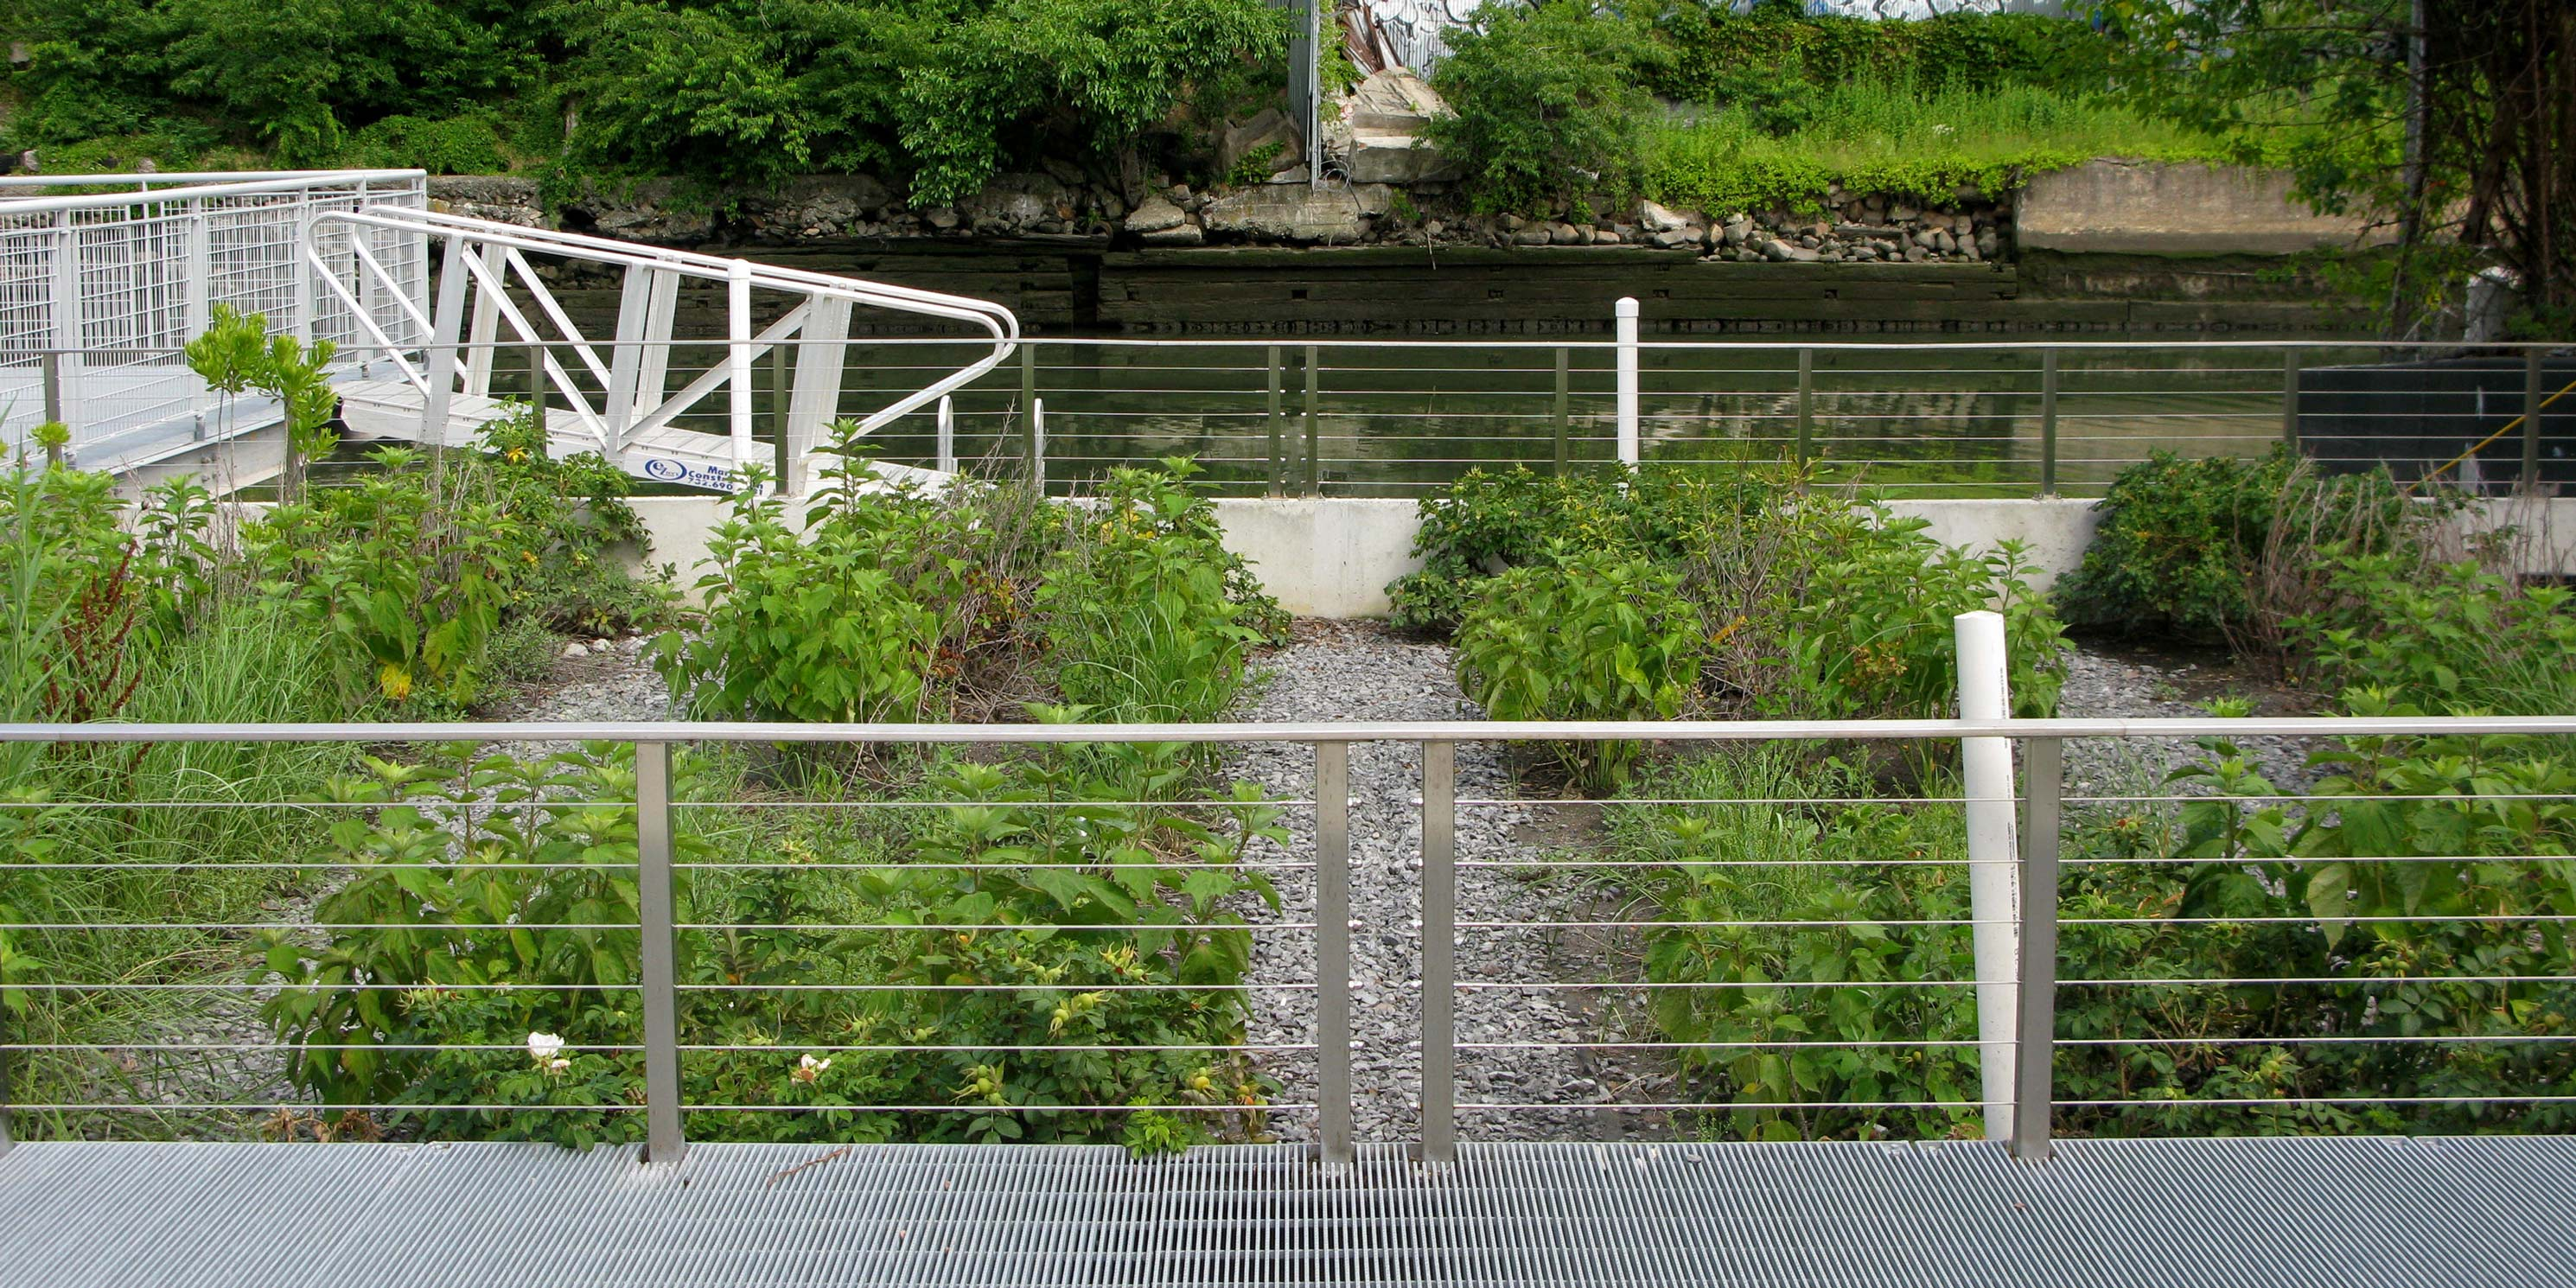 shrub beds at the Gowanus Sponge Park